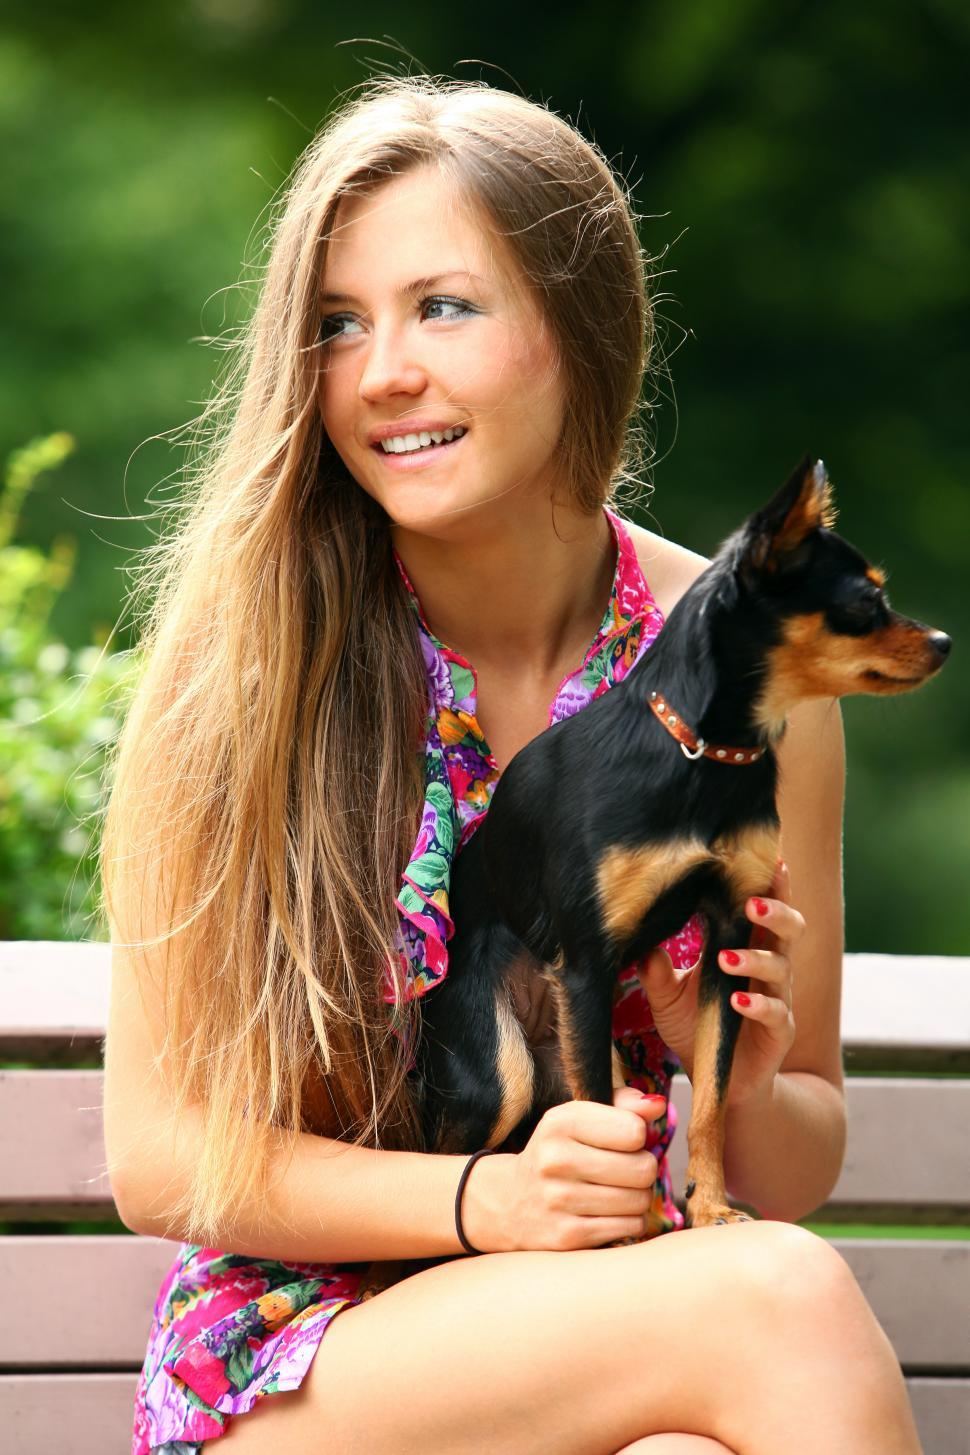 Download Free Stock Photo of Young and happy girl with her cute dog